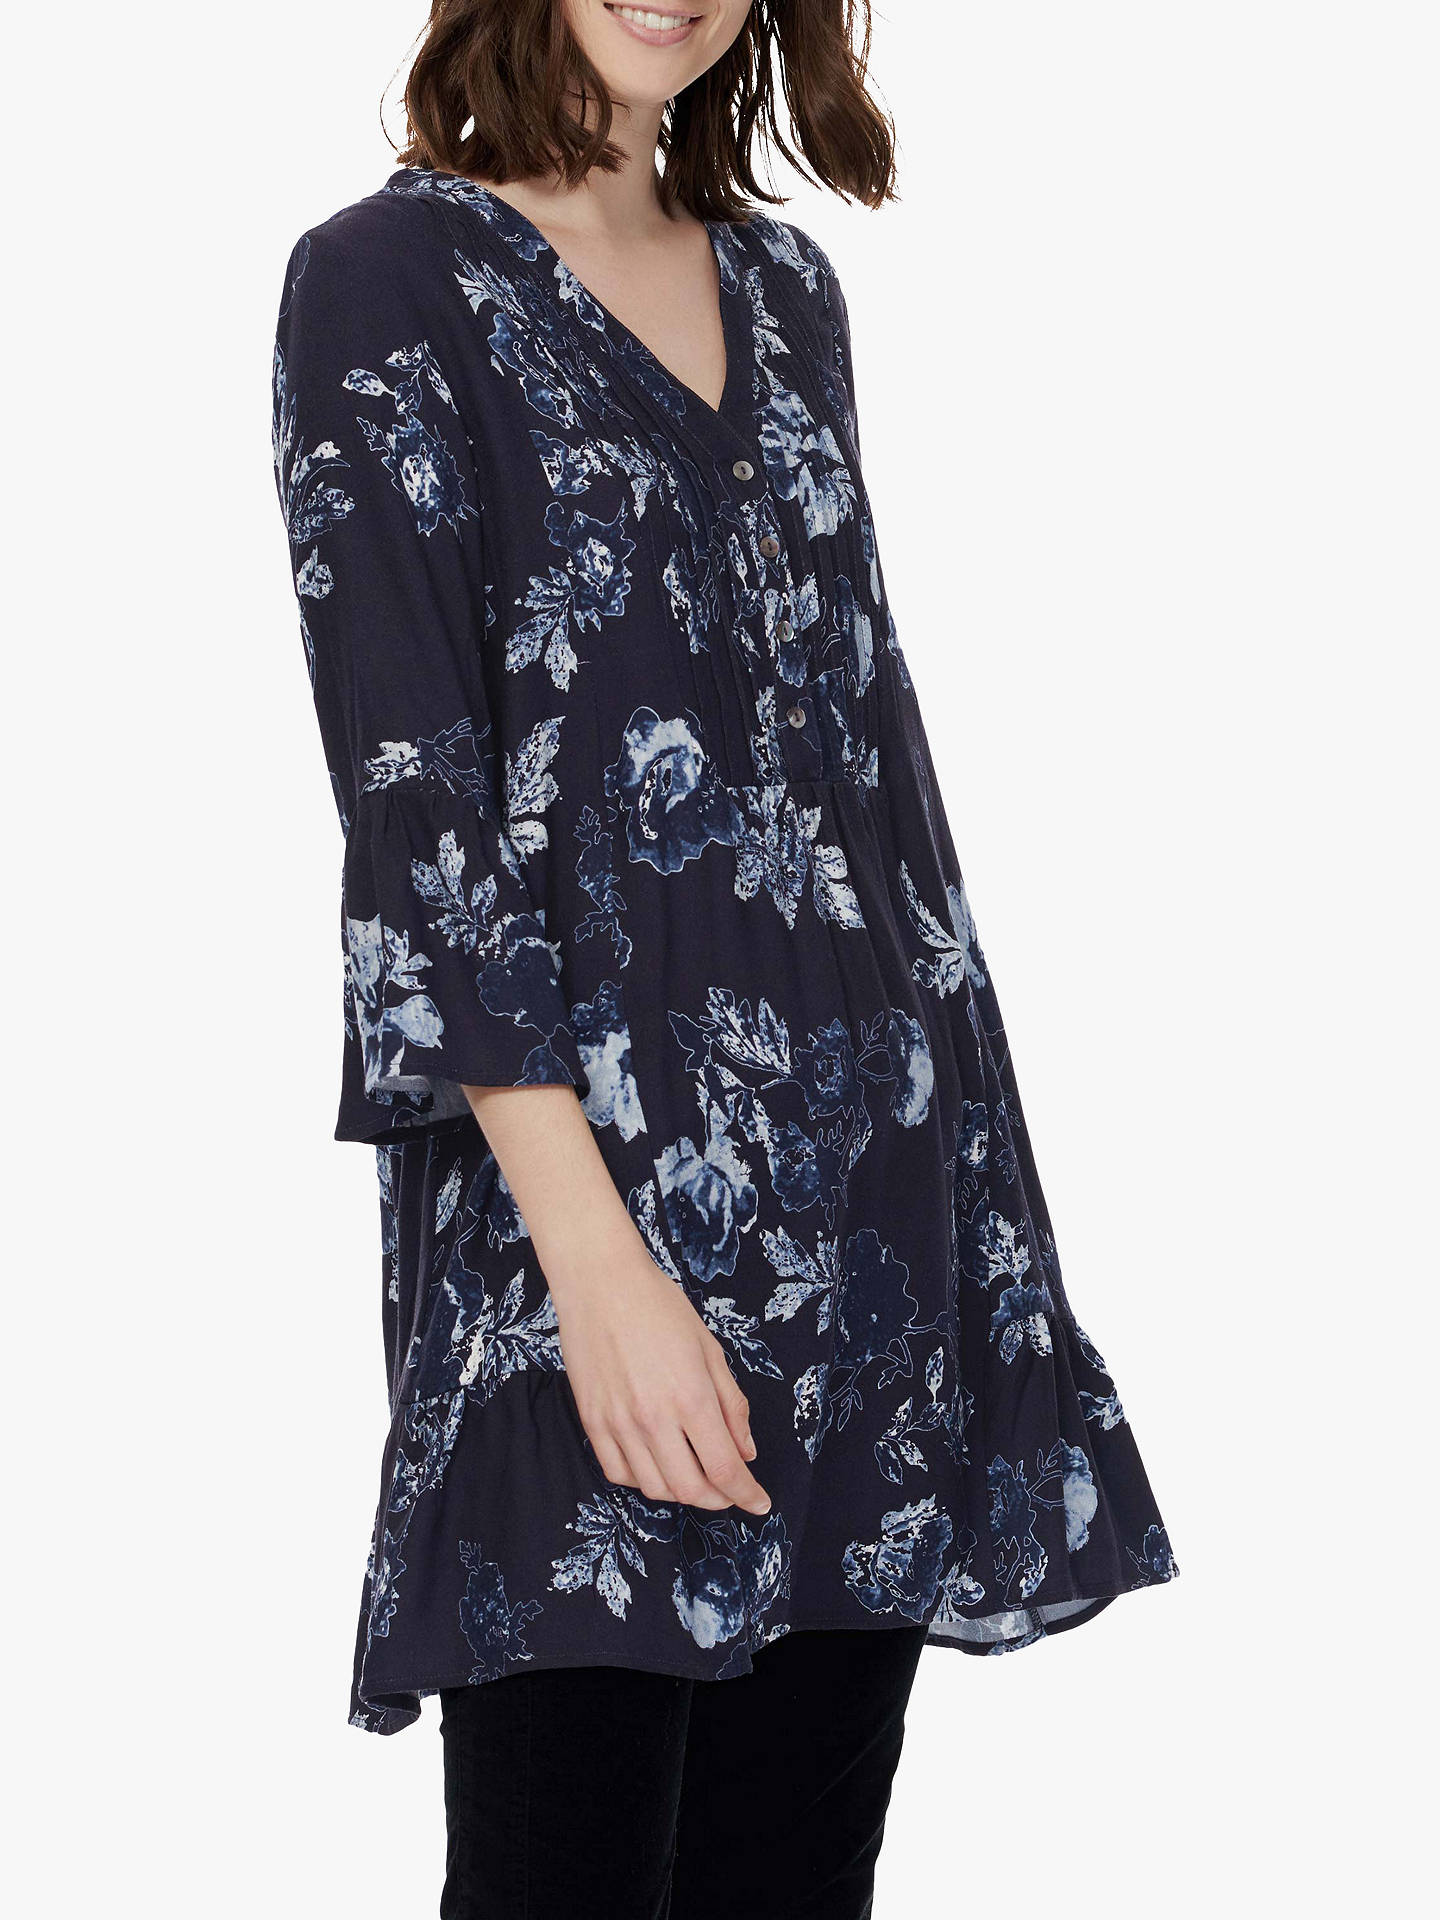 BuyBrora Floral Tunic Dress, Navy/Sea Salt, 8 Online at johnlewis.com